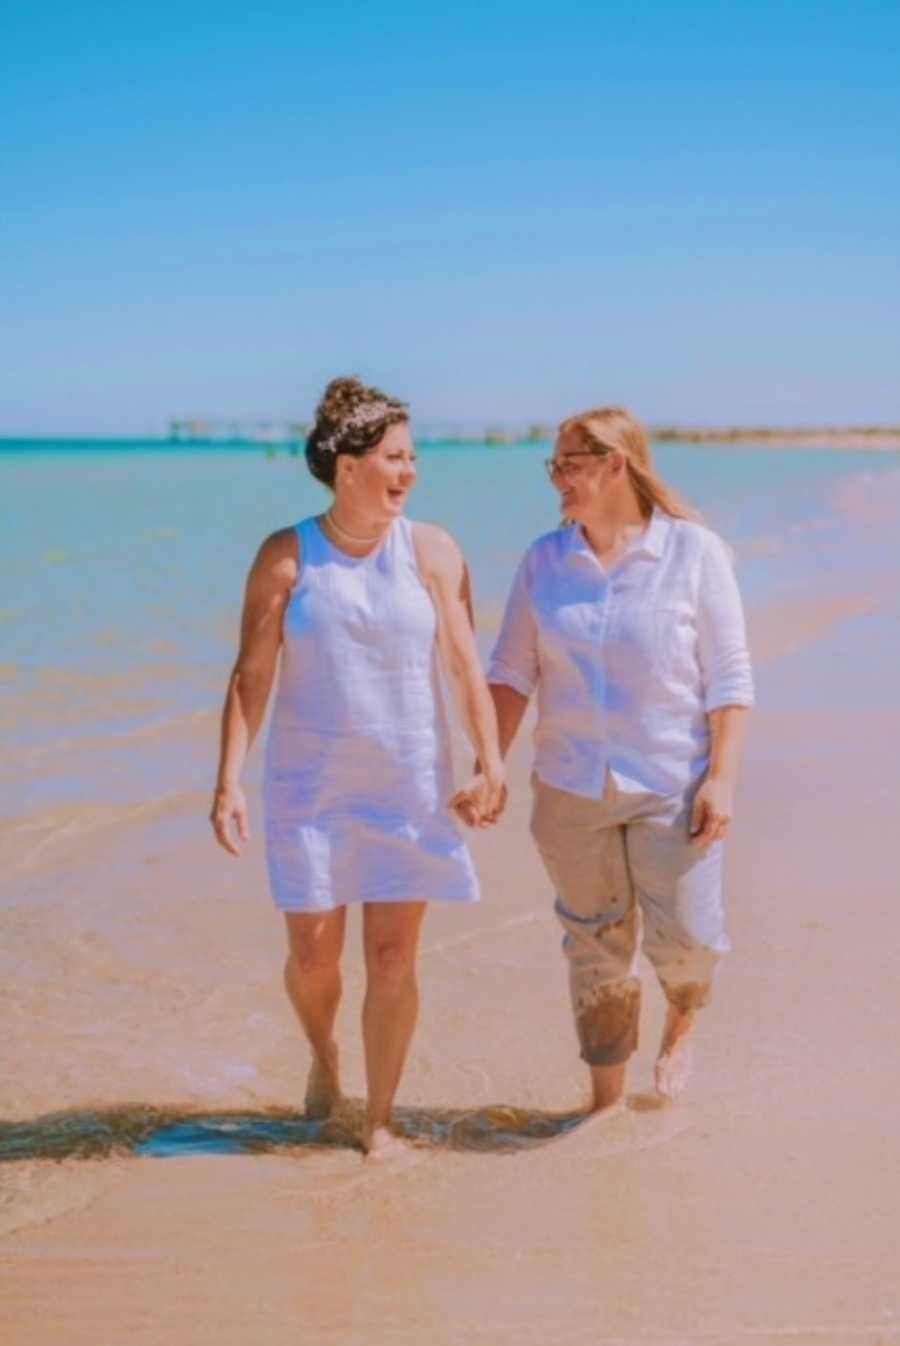 Couple walk hand-in-hand down the beach after their wedding, celebrating their love